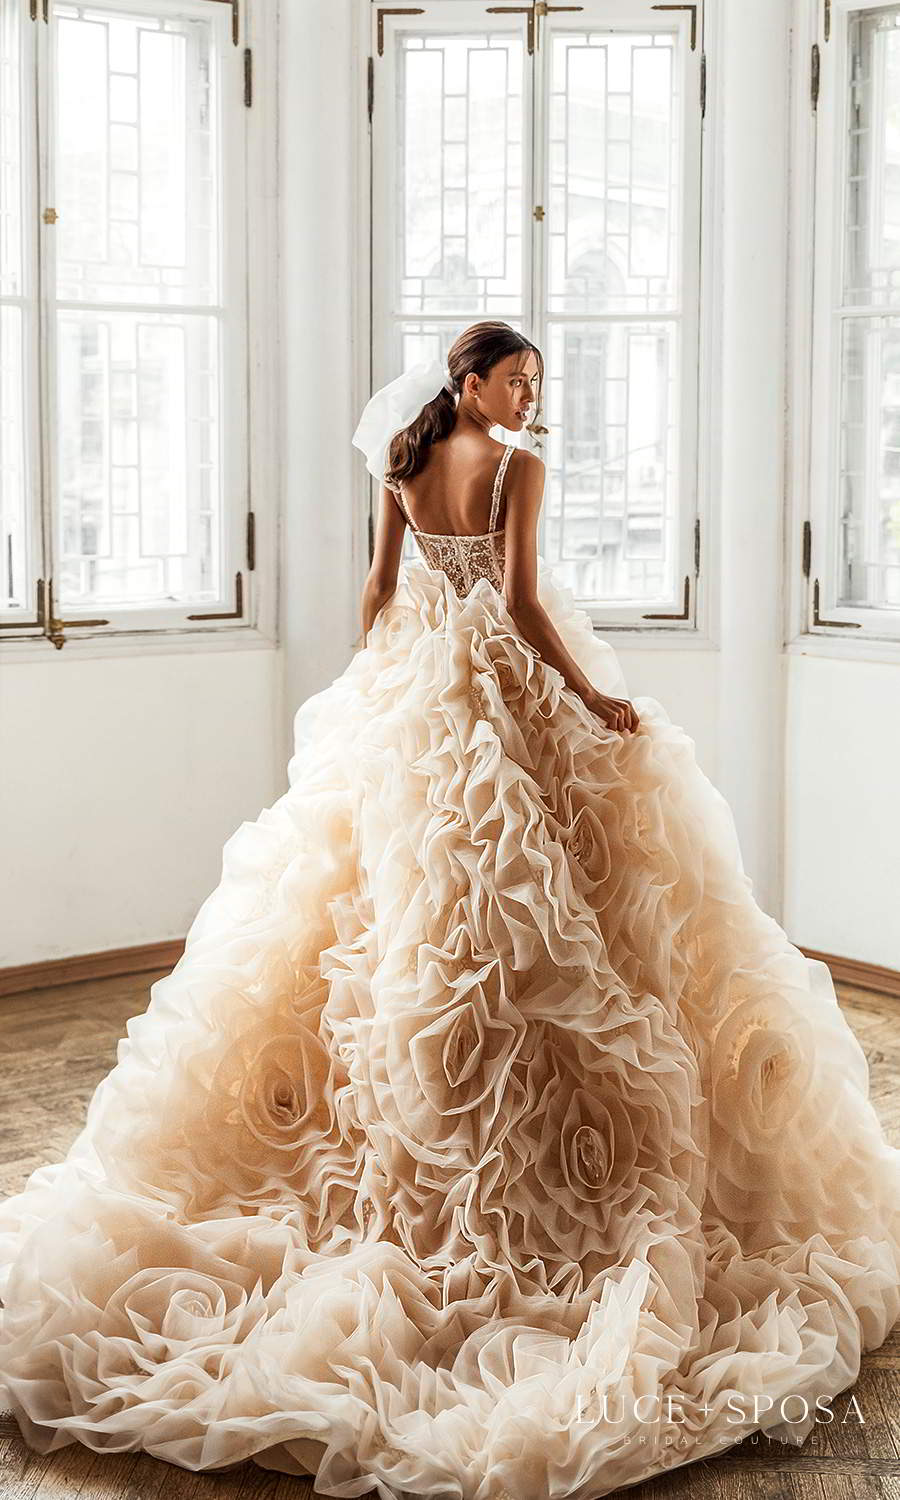 luce sposa 2021 shades of couture bridal sleeveless straps v neckline heavily embellished bodice ruffle flange skirt a line ball gown wedding dress chapel train (isabella) bv